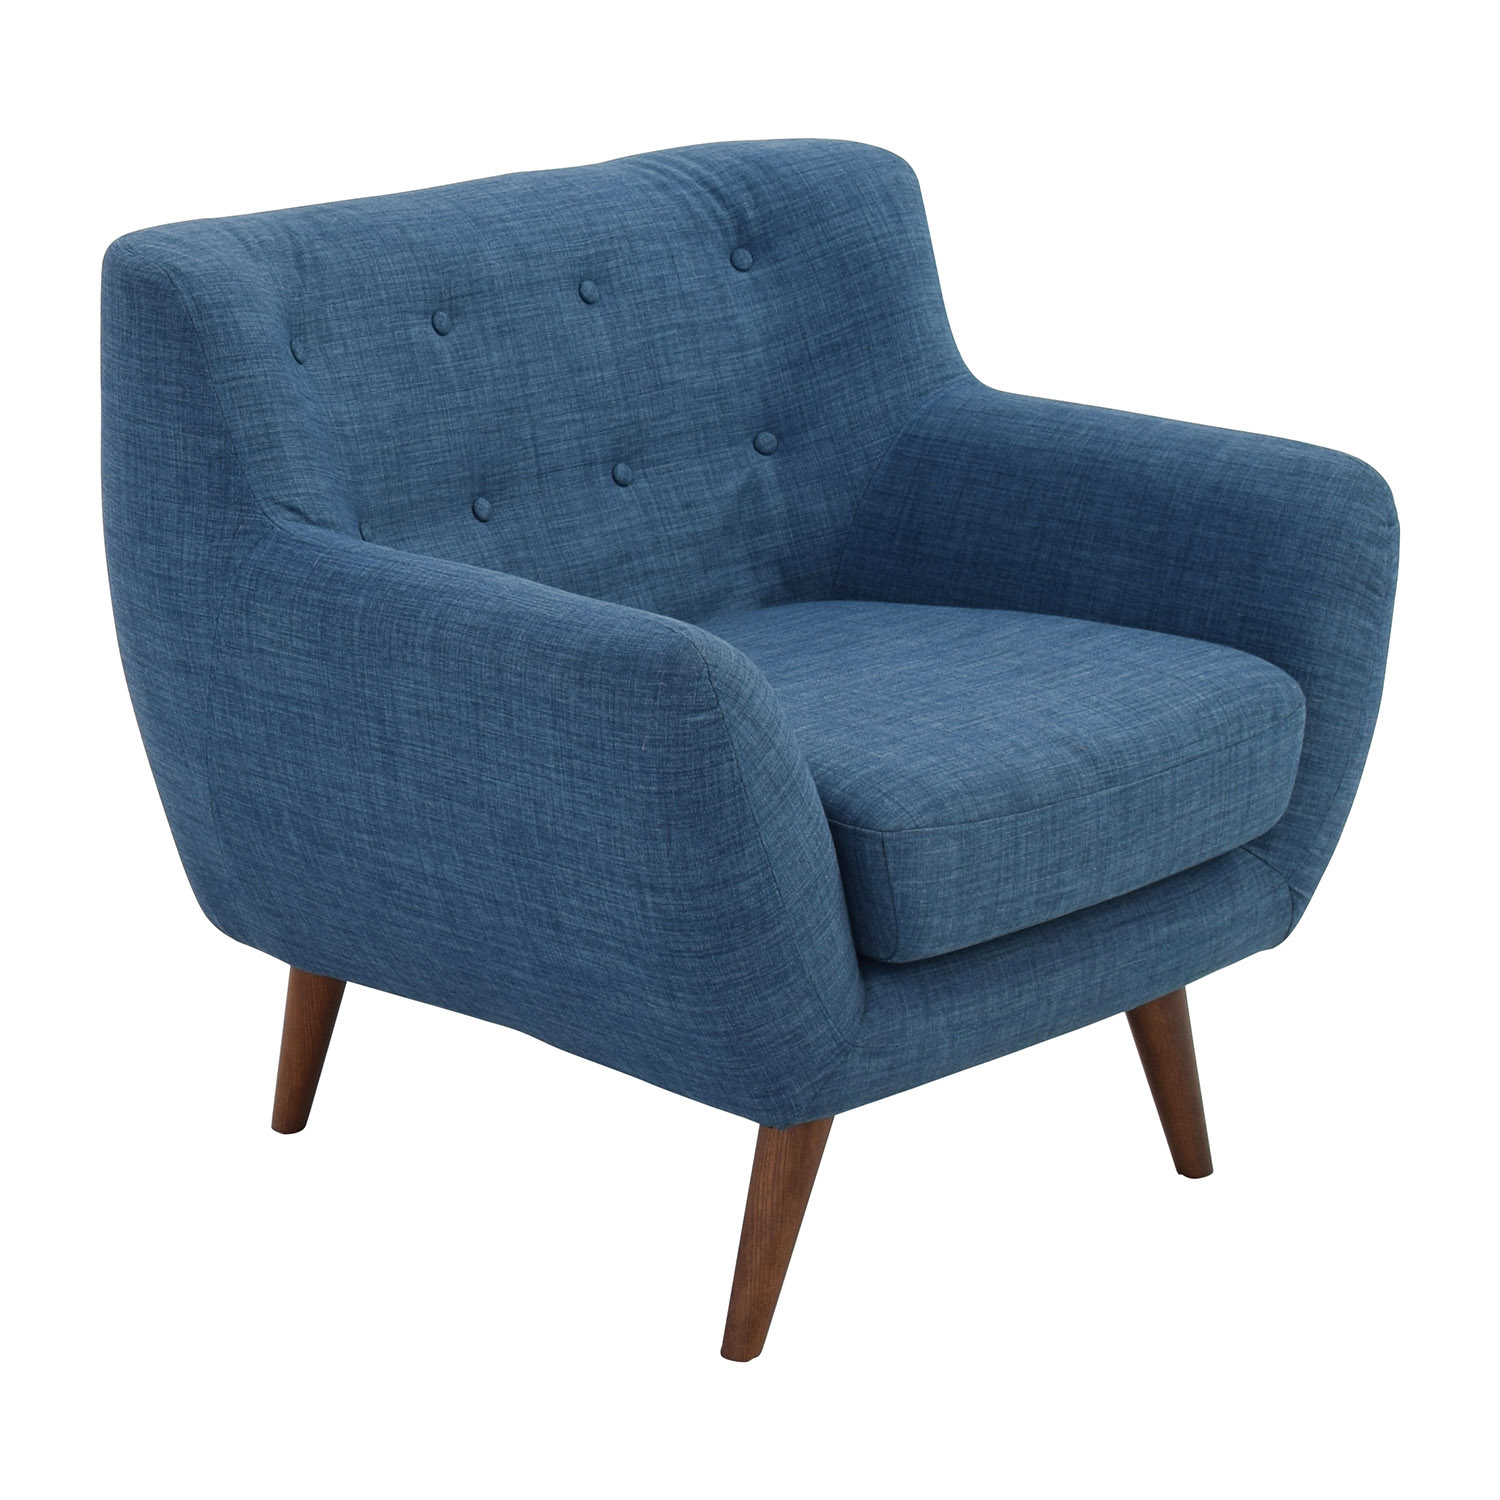 59% OFF - Olson Olson Mid-Century Blue Tufted Arm Chair ...